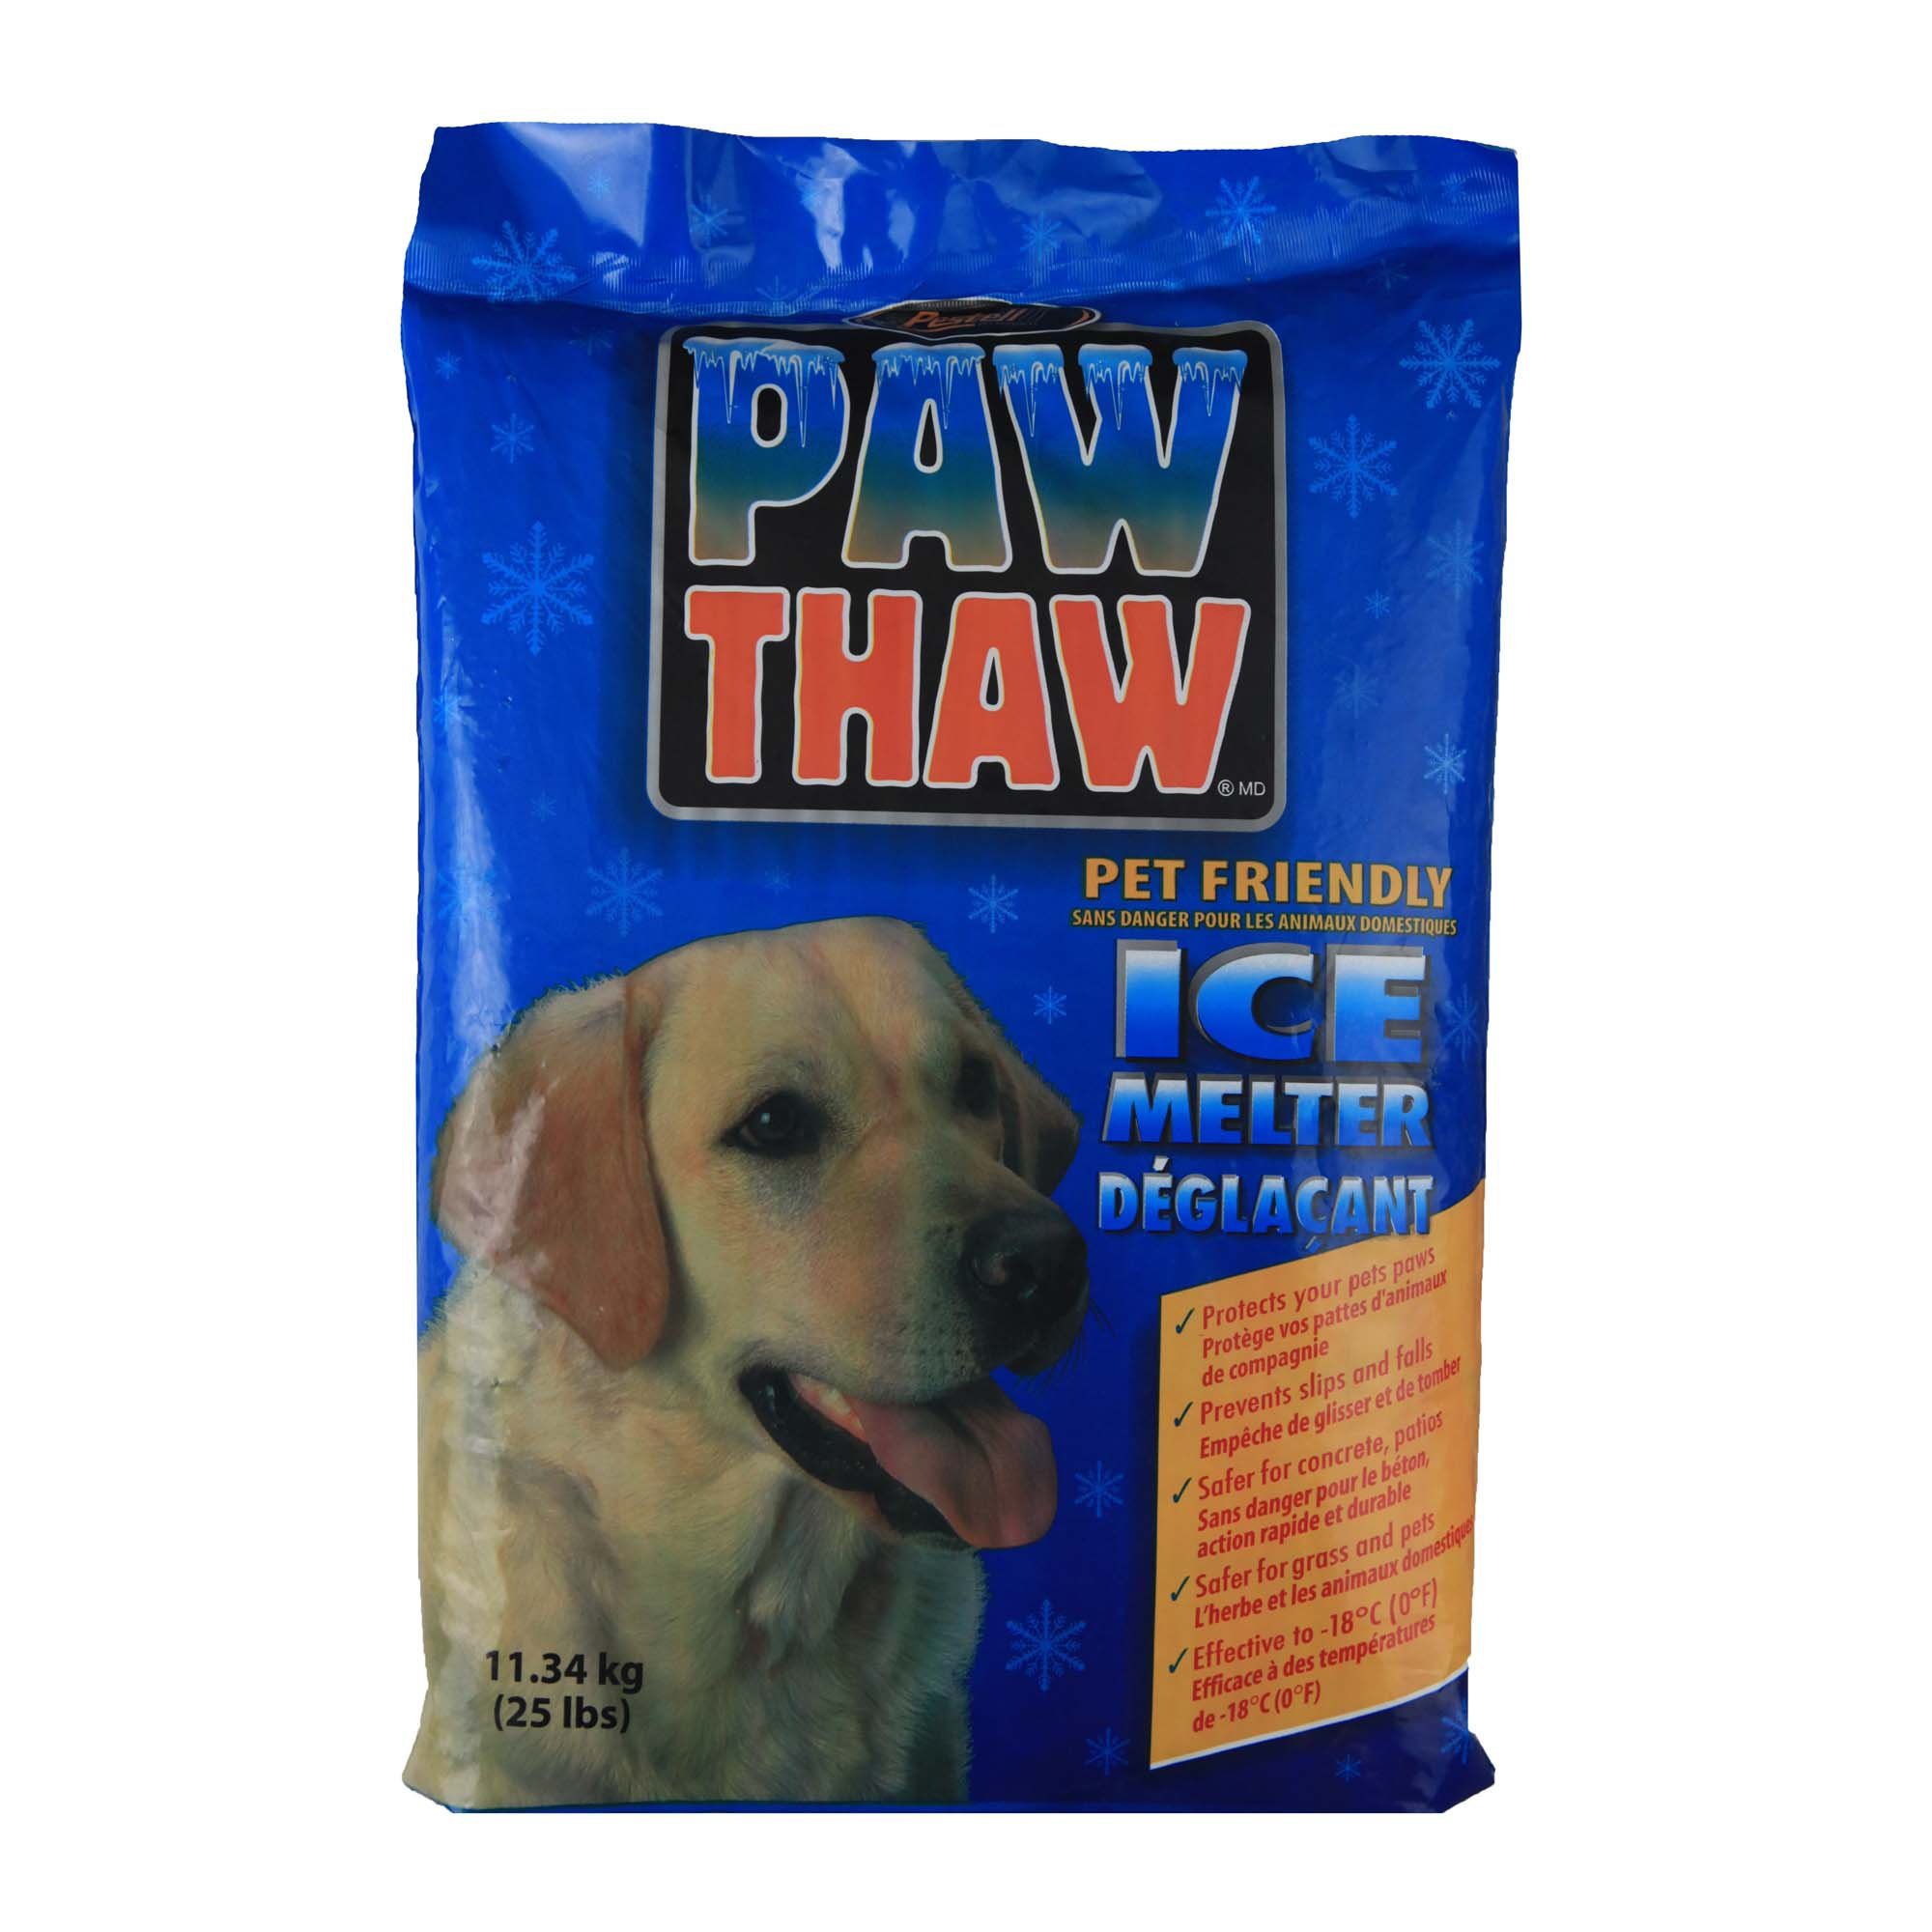 Pestell Paw Thaw Pet Friendly Ice Melter, Bag